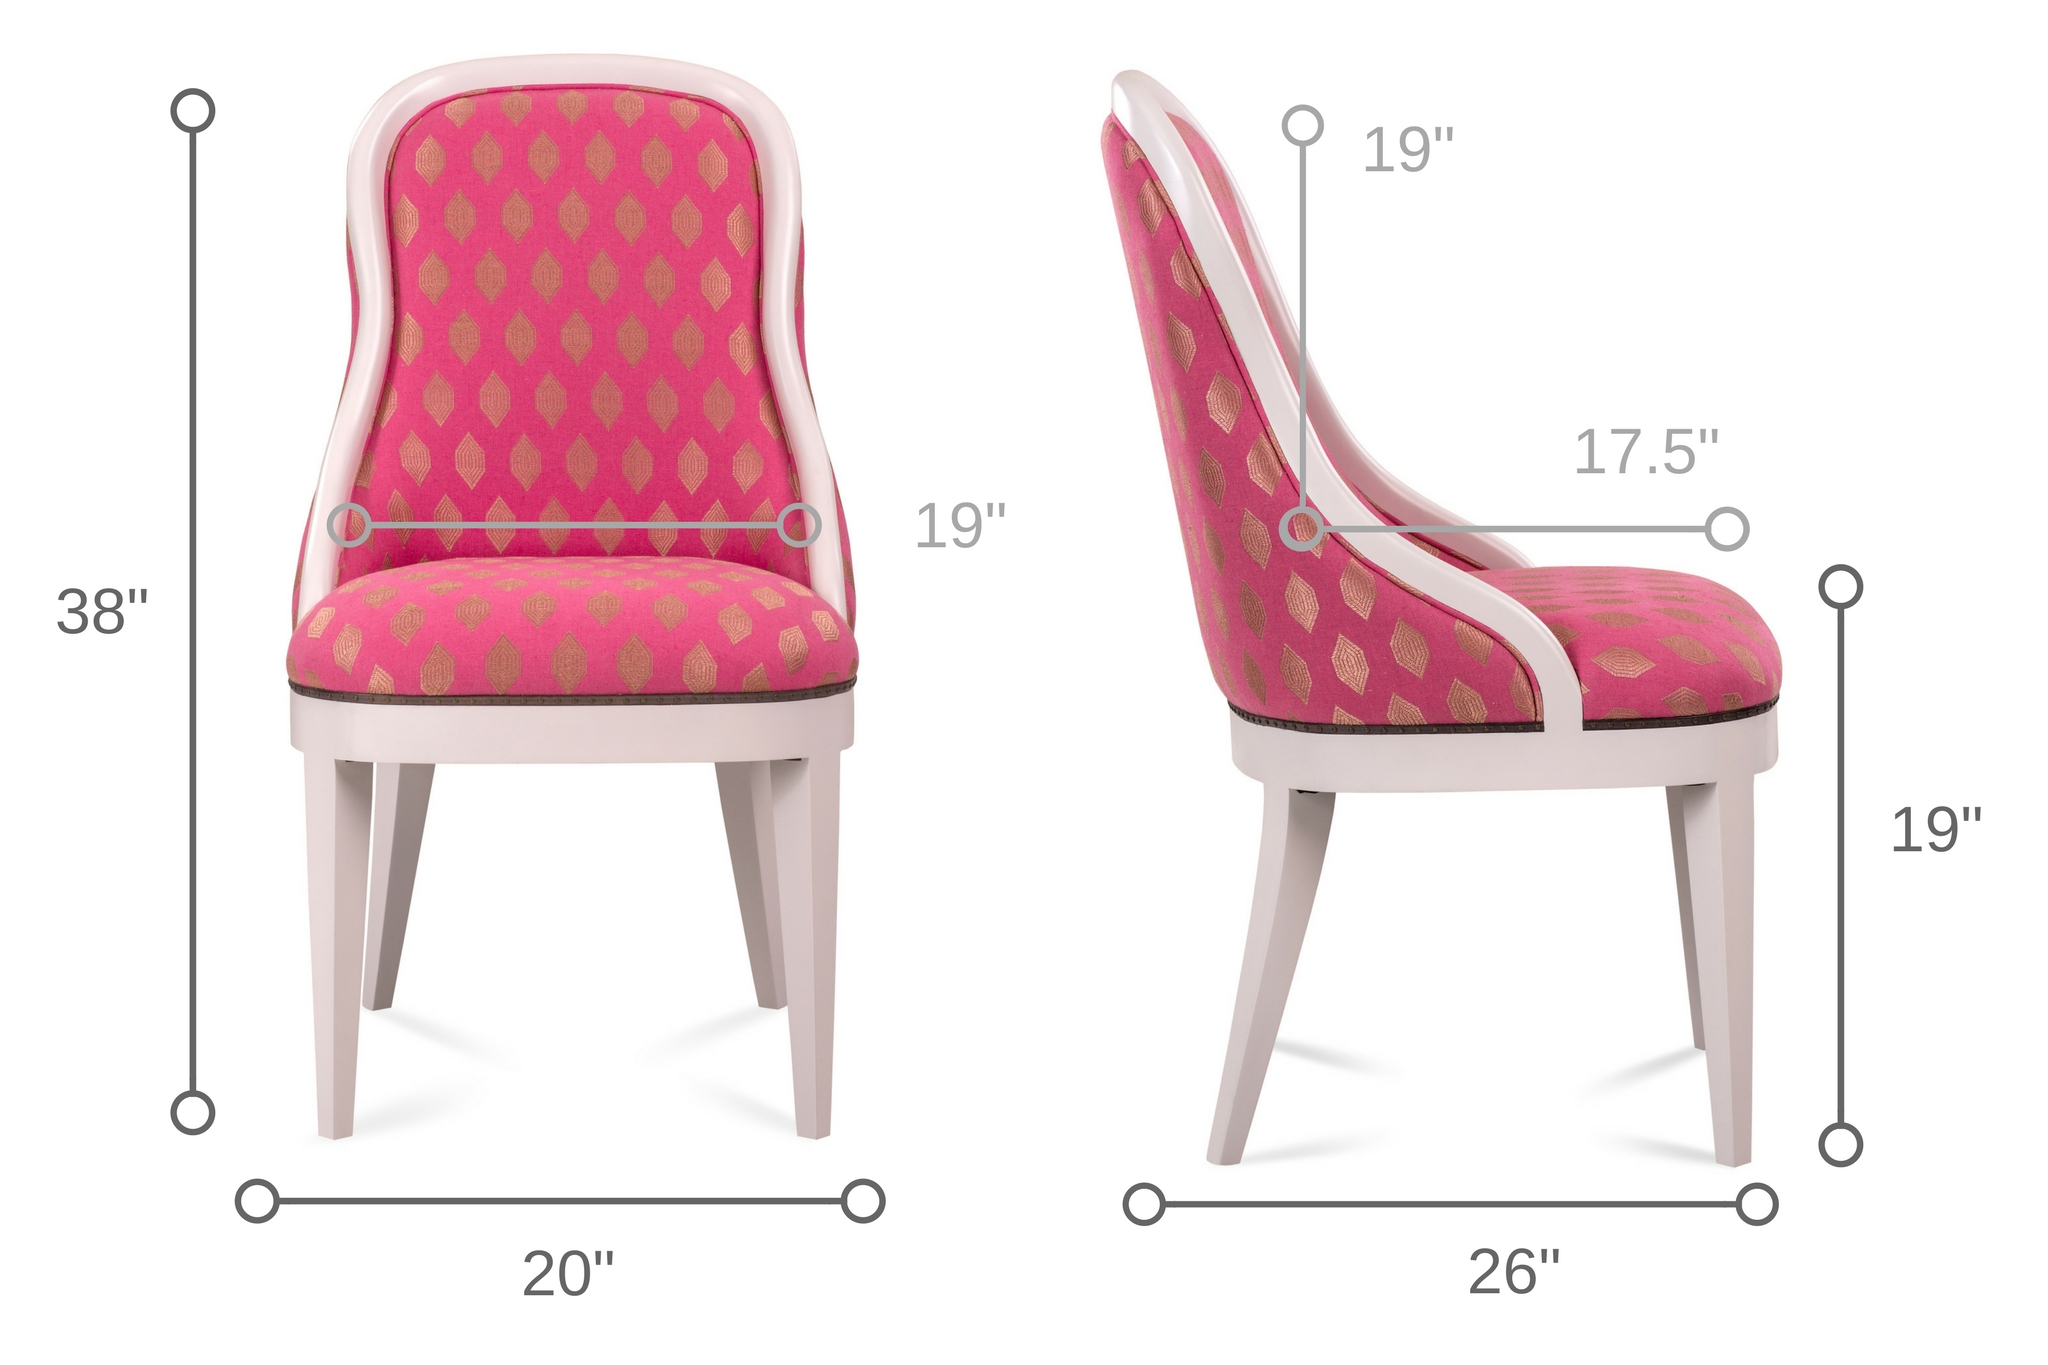 Dowel Furniture Frenchie Side Chair Dimensions